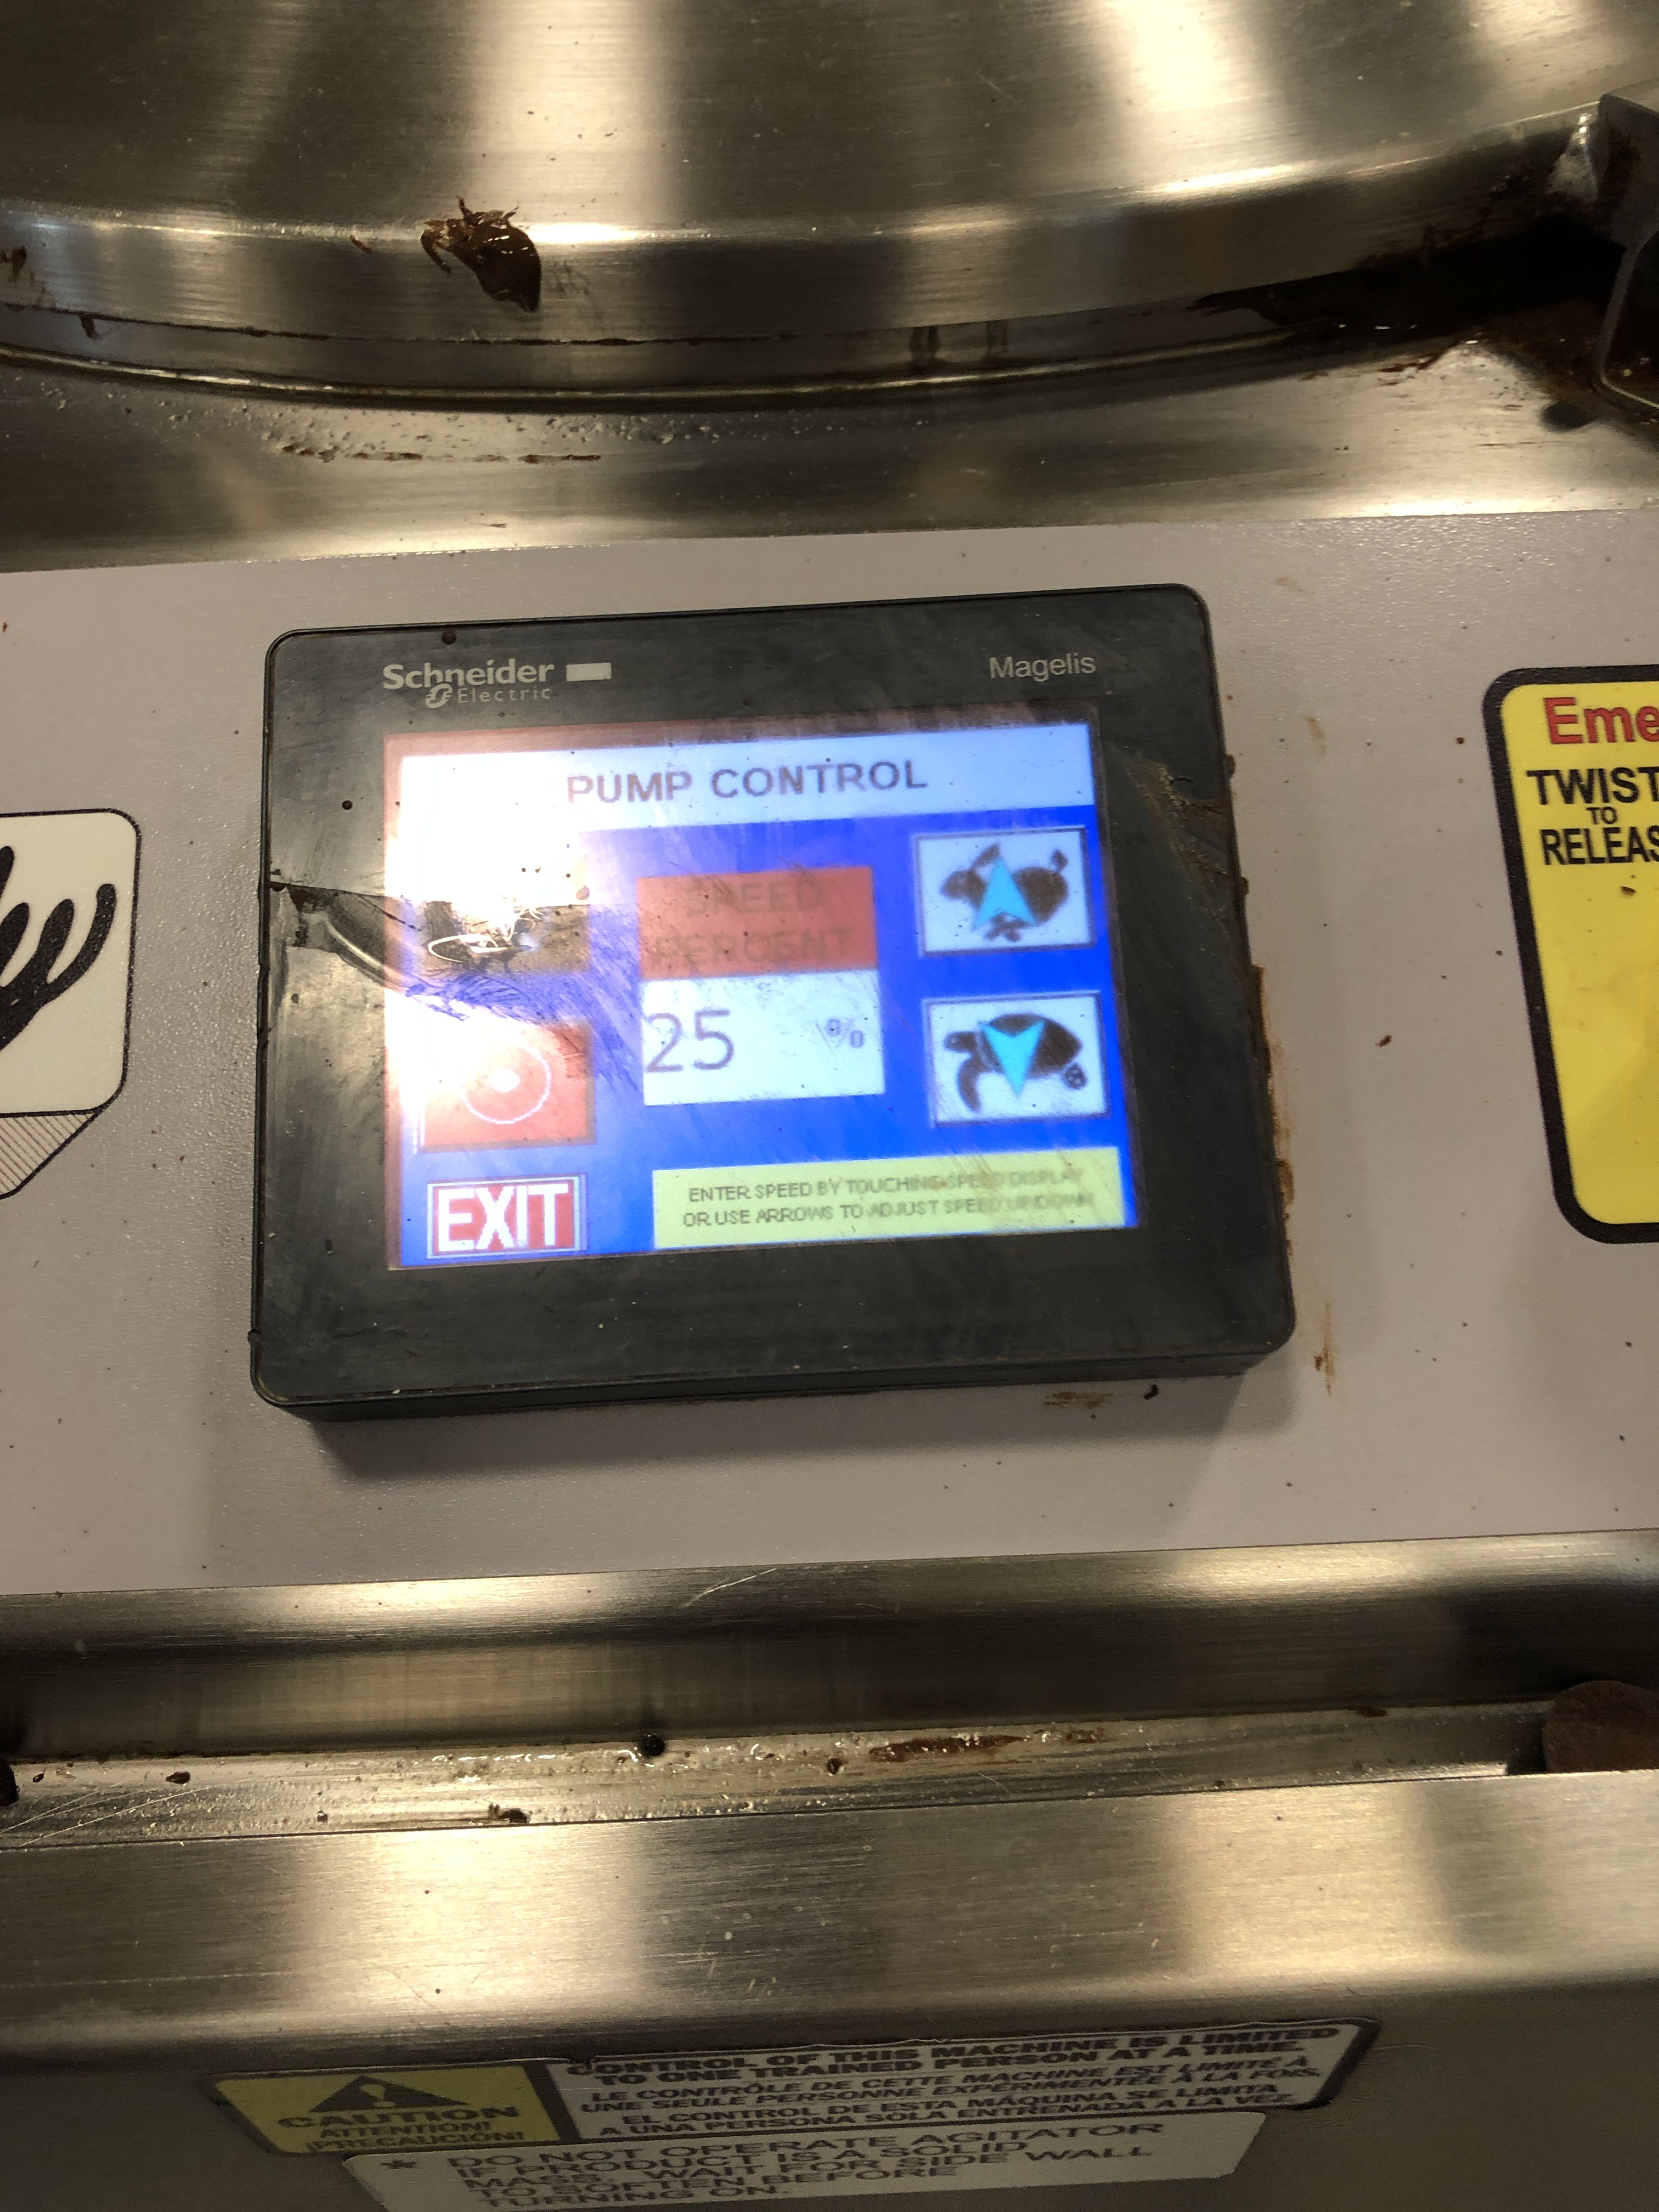 Lot 10 - Savage/Woody 125 lb Stainless Steel Chocolate Melter with Touchscreen controls, jacketed and